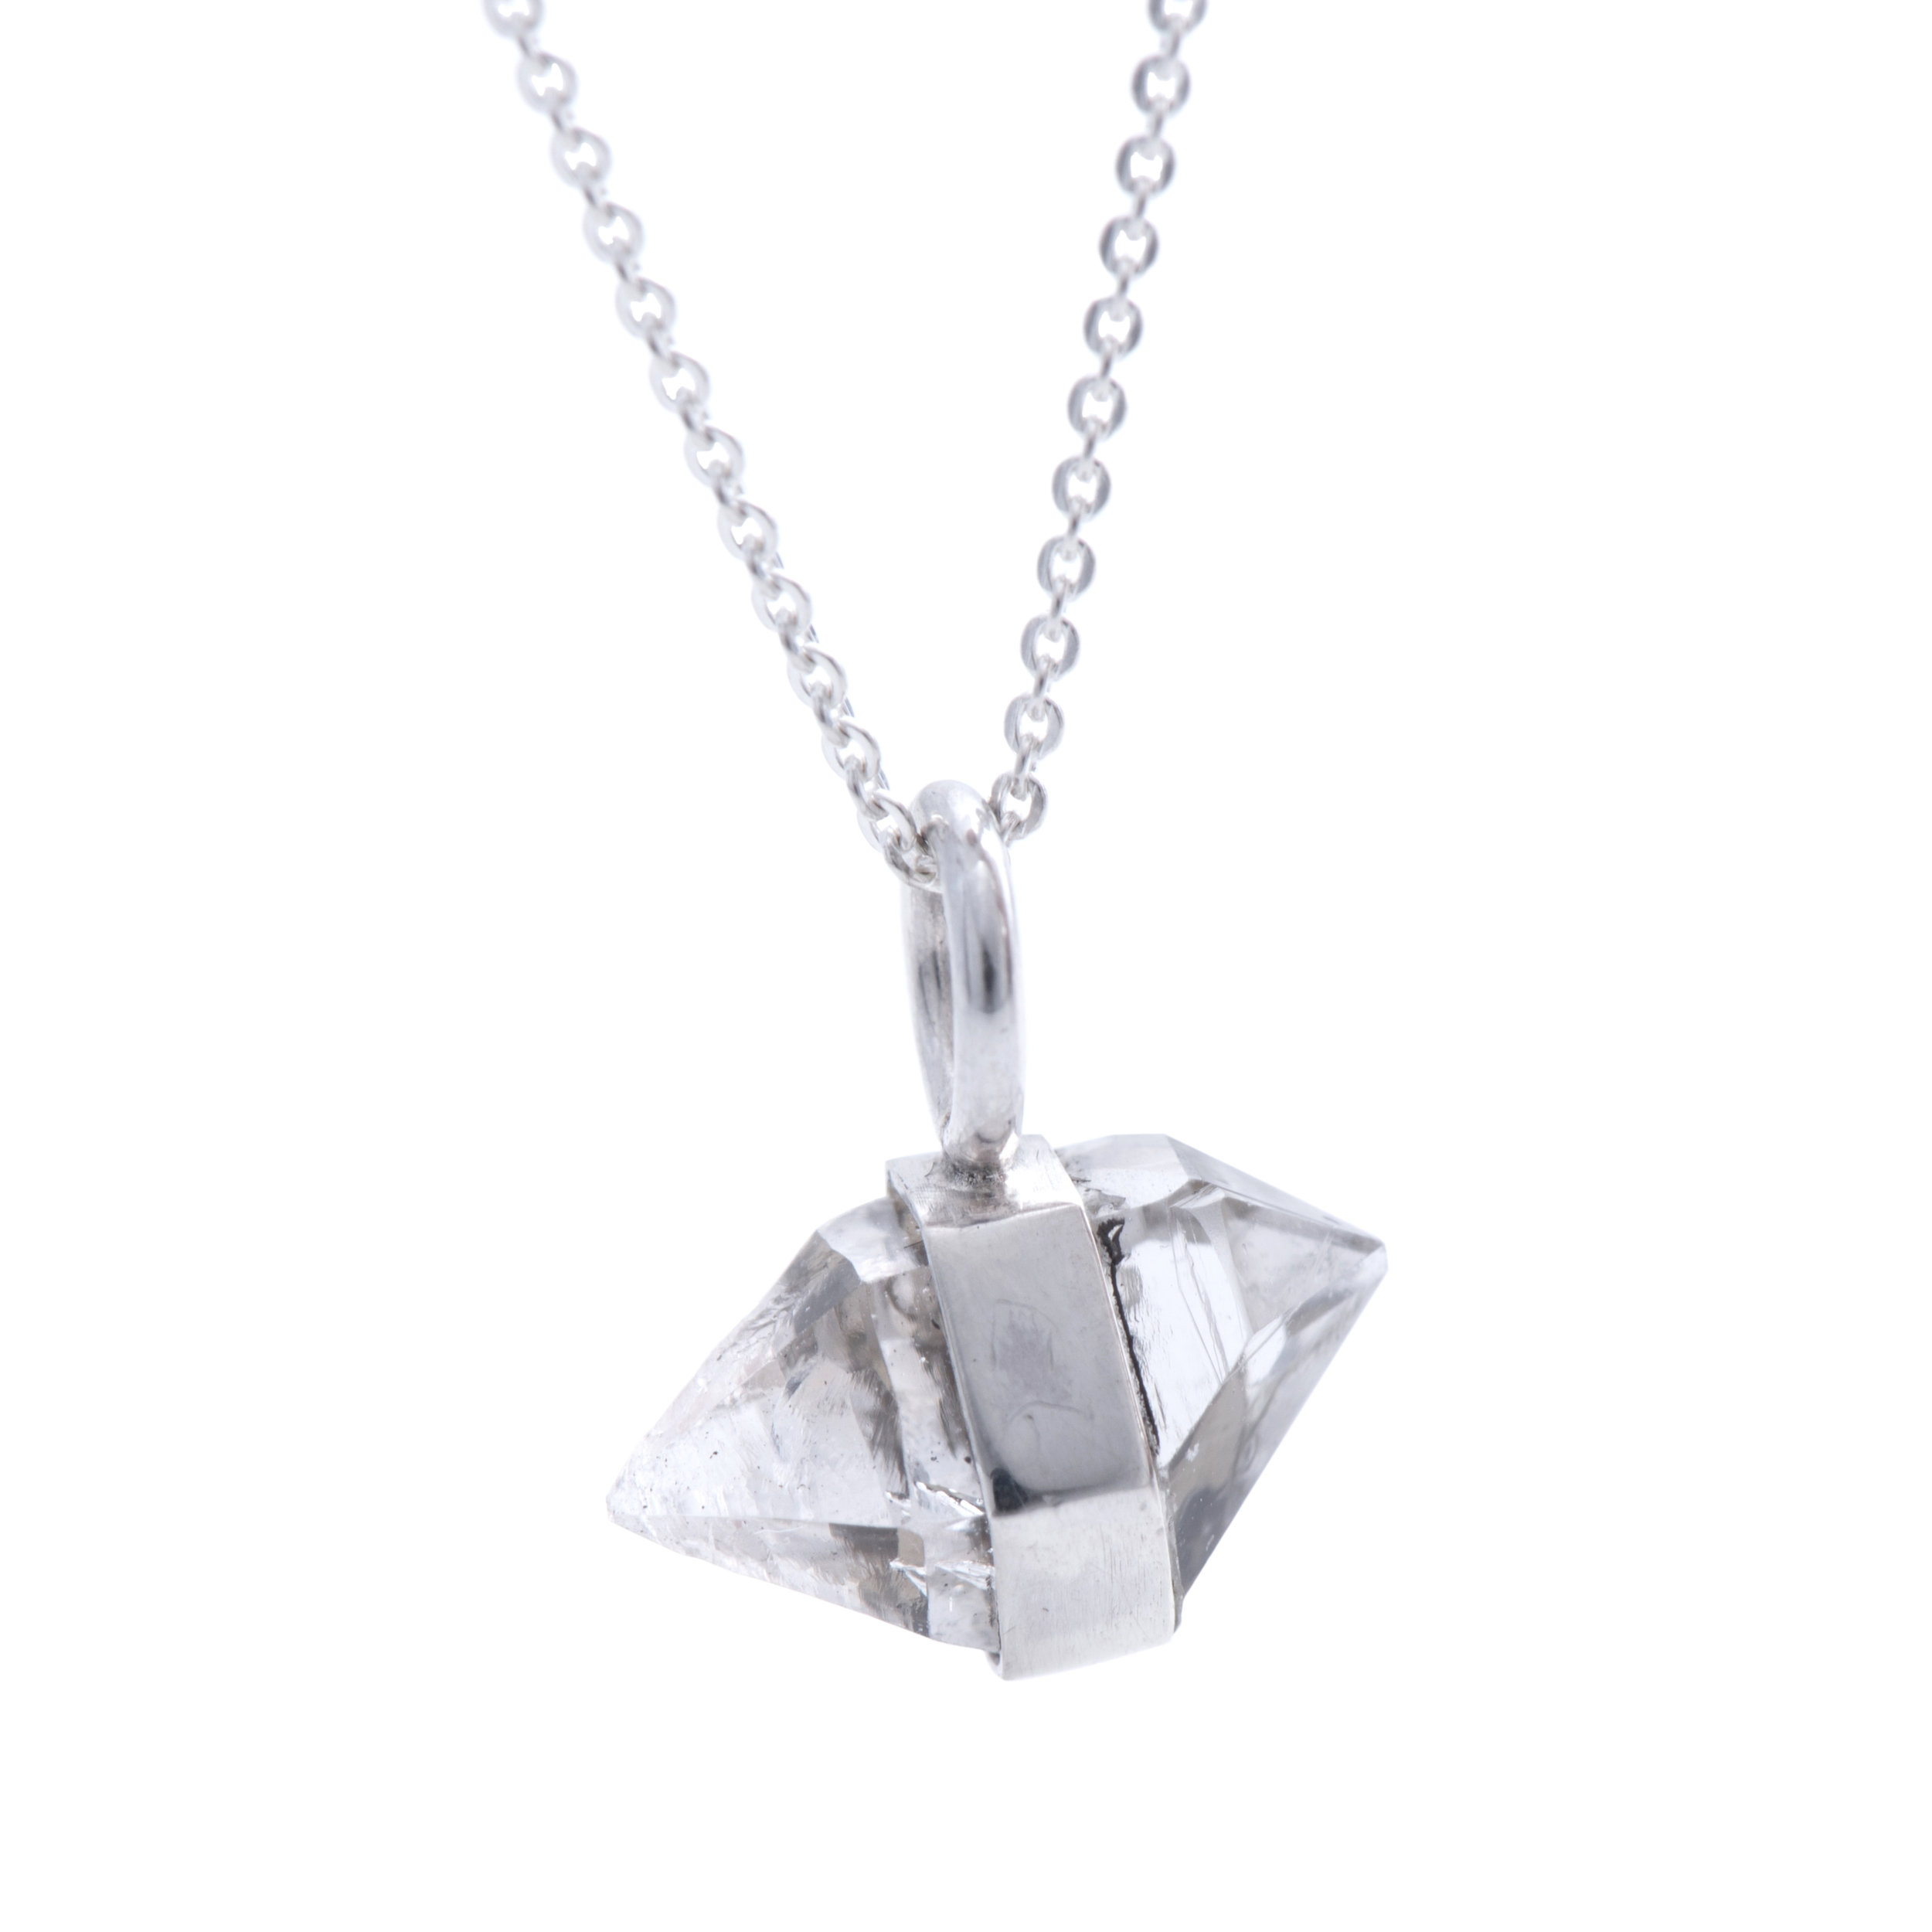 EYESEEi. AAVRE necklace. Sterling silver and one raw Herkimer diamond crystal. The word means success and happiness in the Southern Sami dialect. Price: 580 SEK Photo: Naomi Pongolini